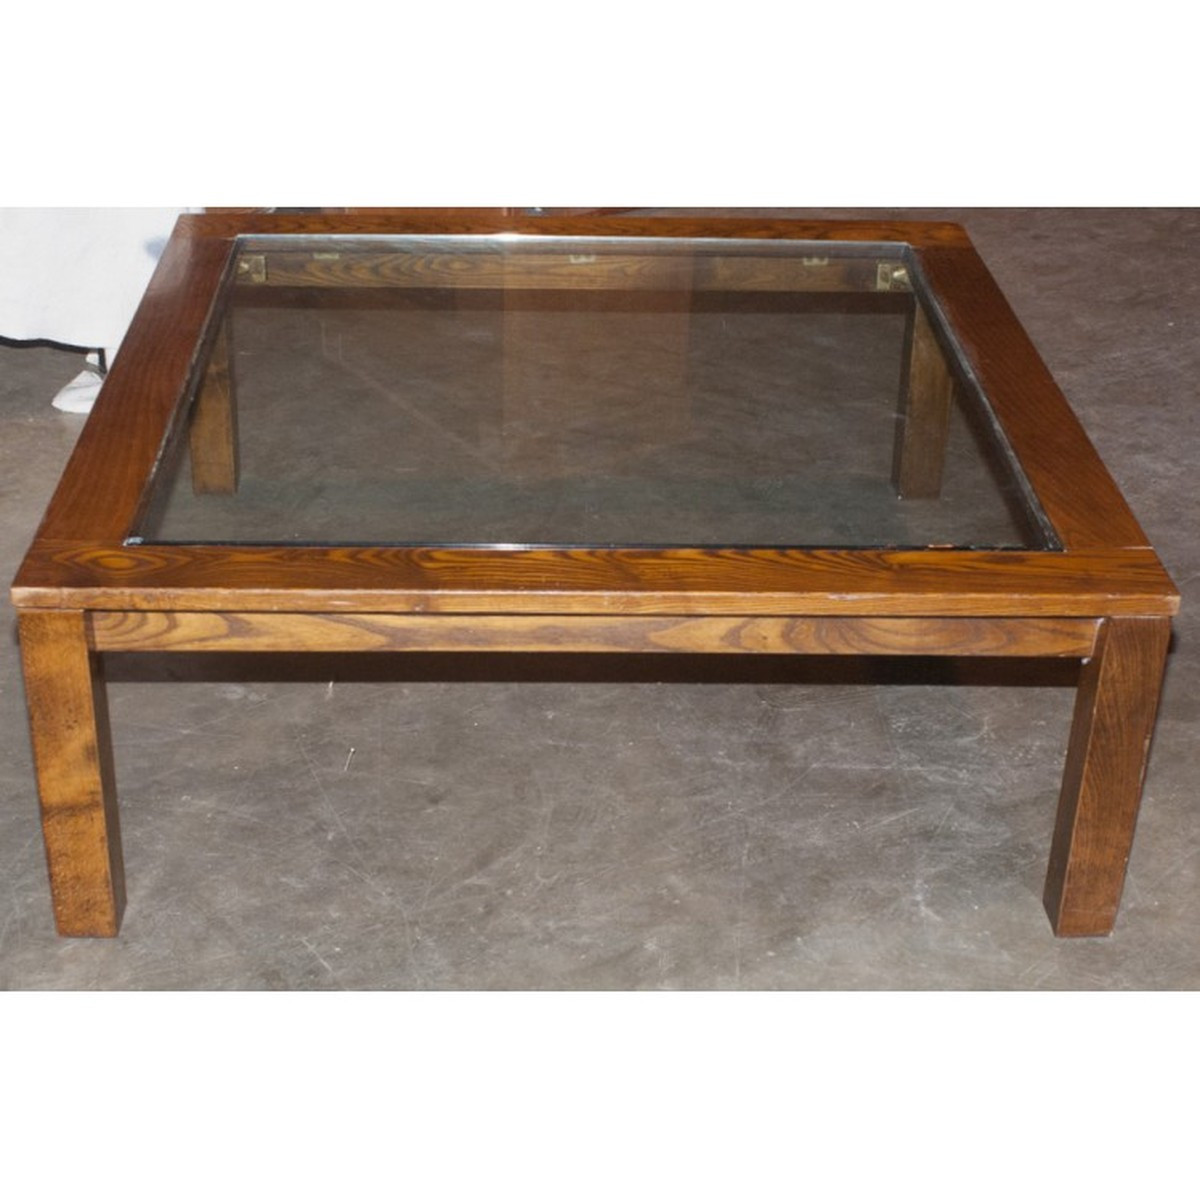 Best ideas about Coffee Table For Sale . Save or Pin Secondhand Chairs and Tables Lounge Furniture Now.